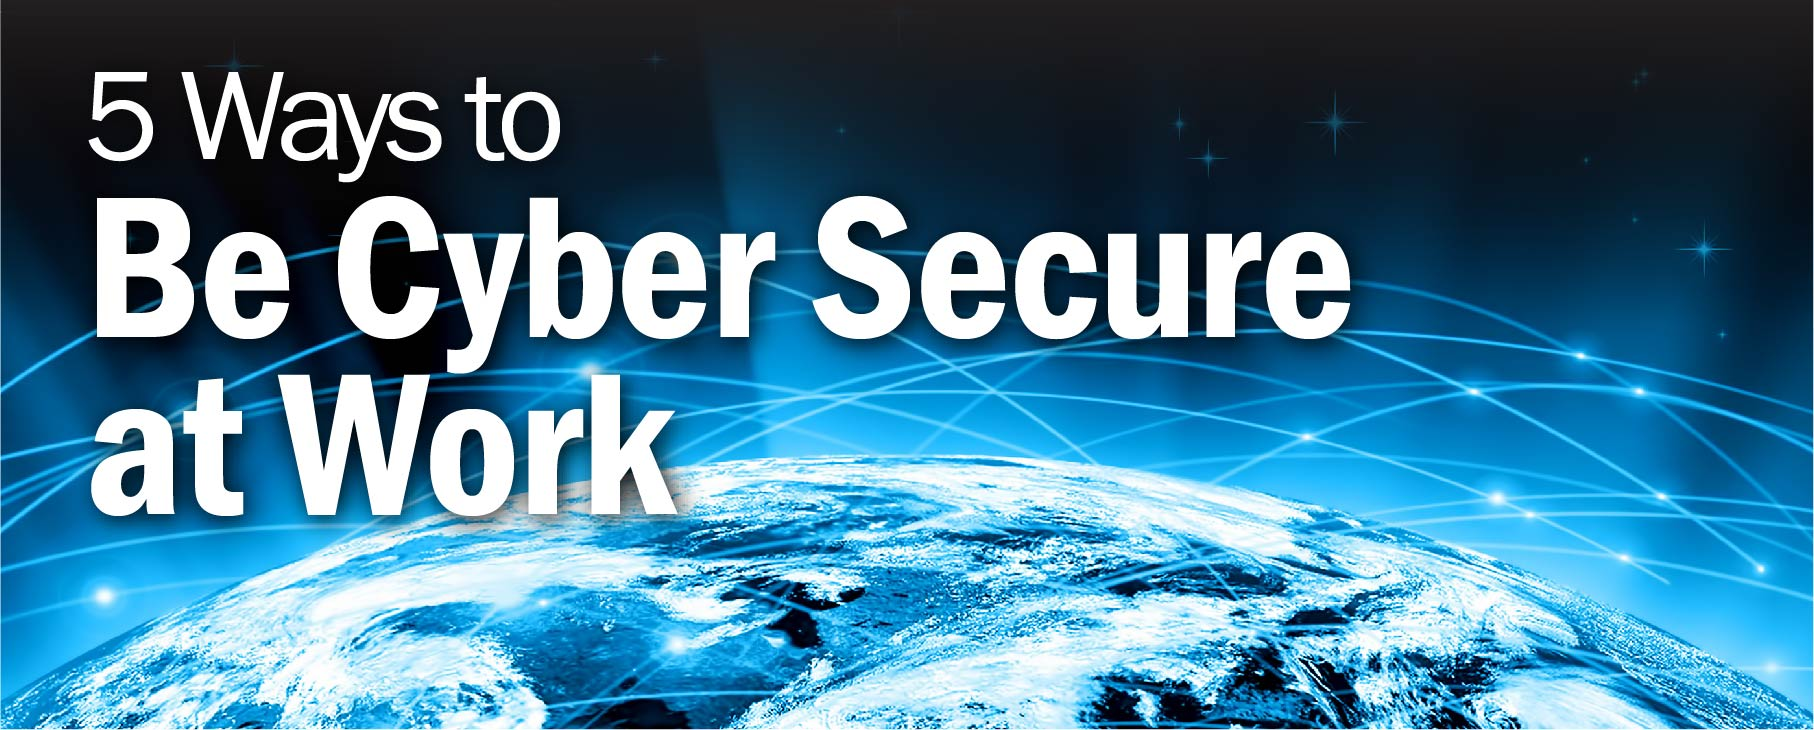 5 Ways to Be Cyber Secure at Work